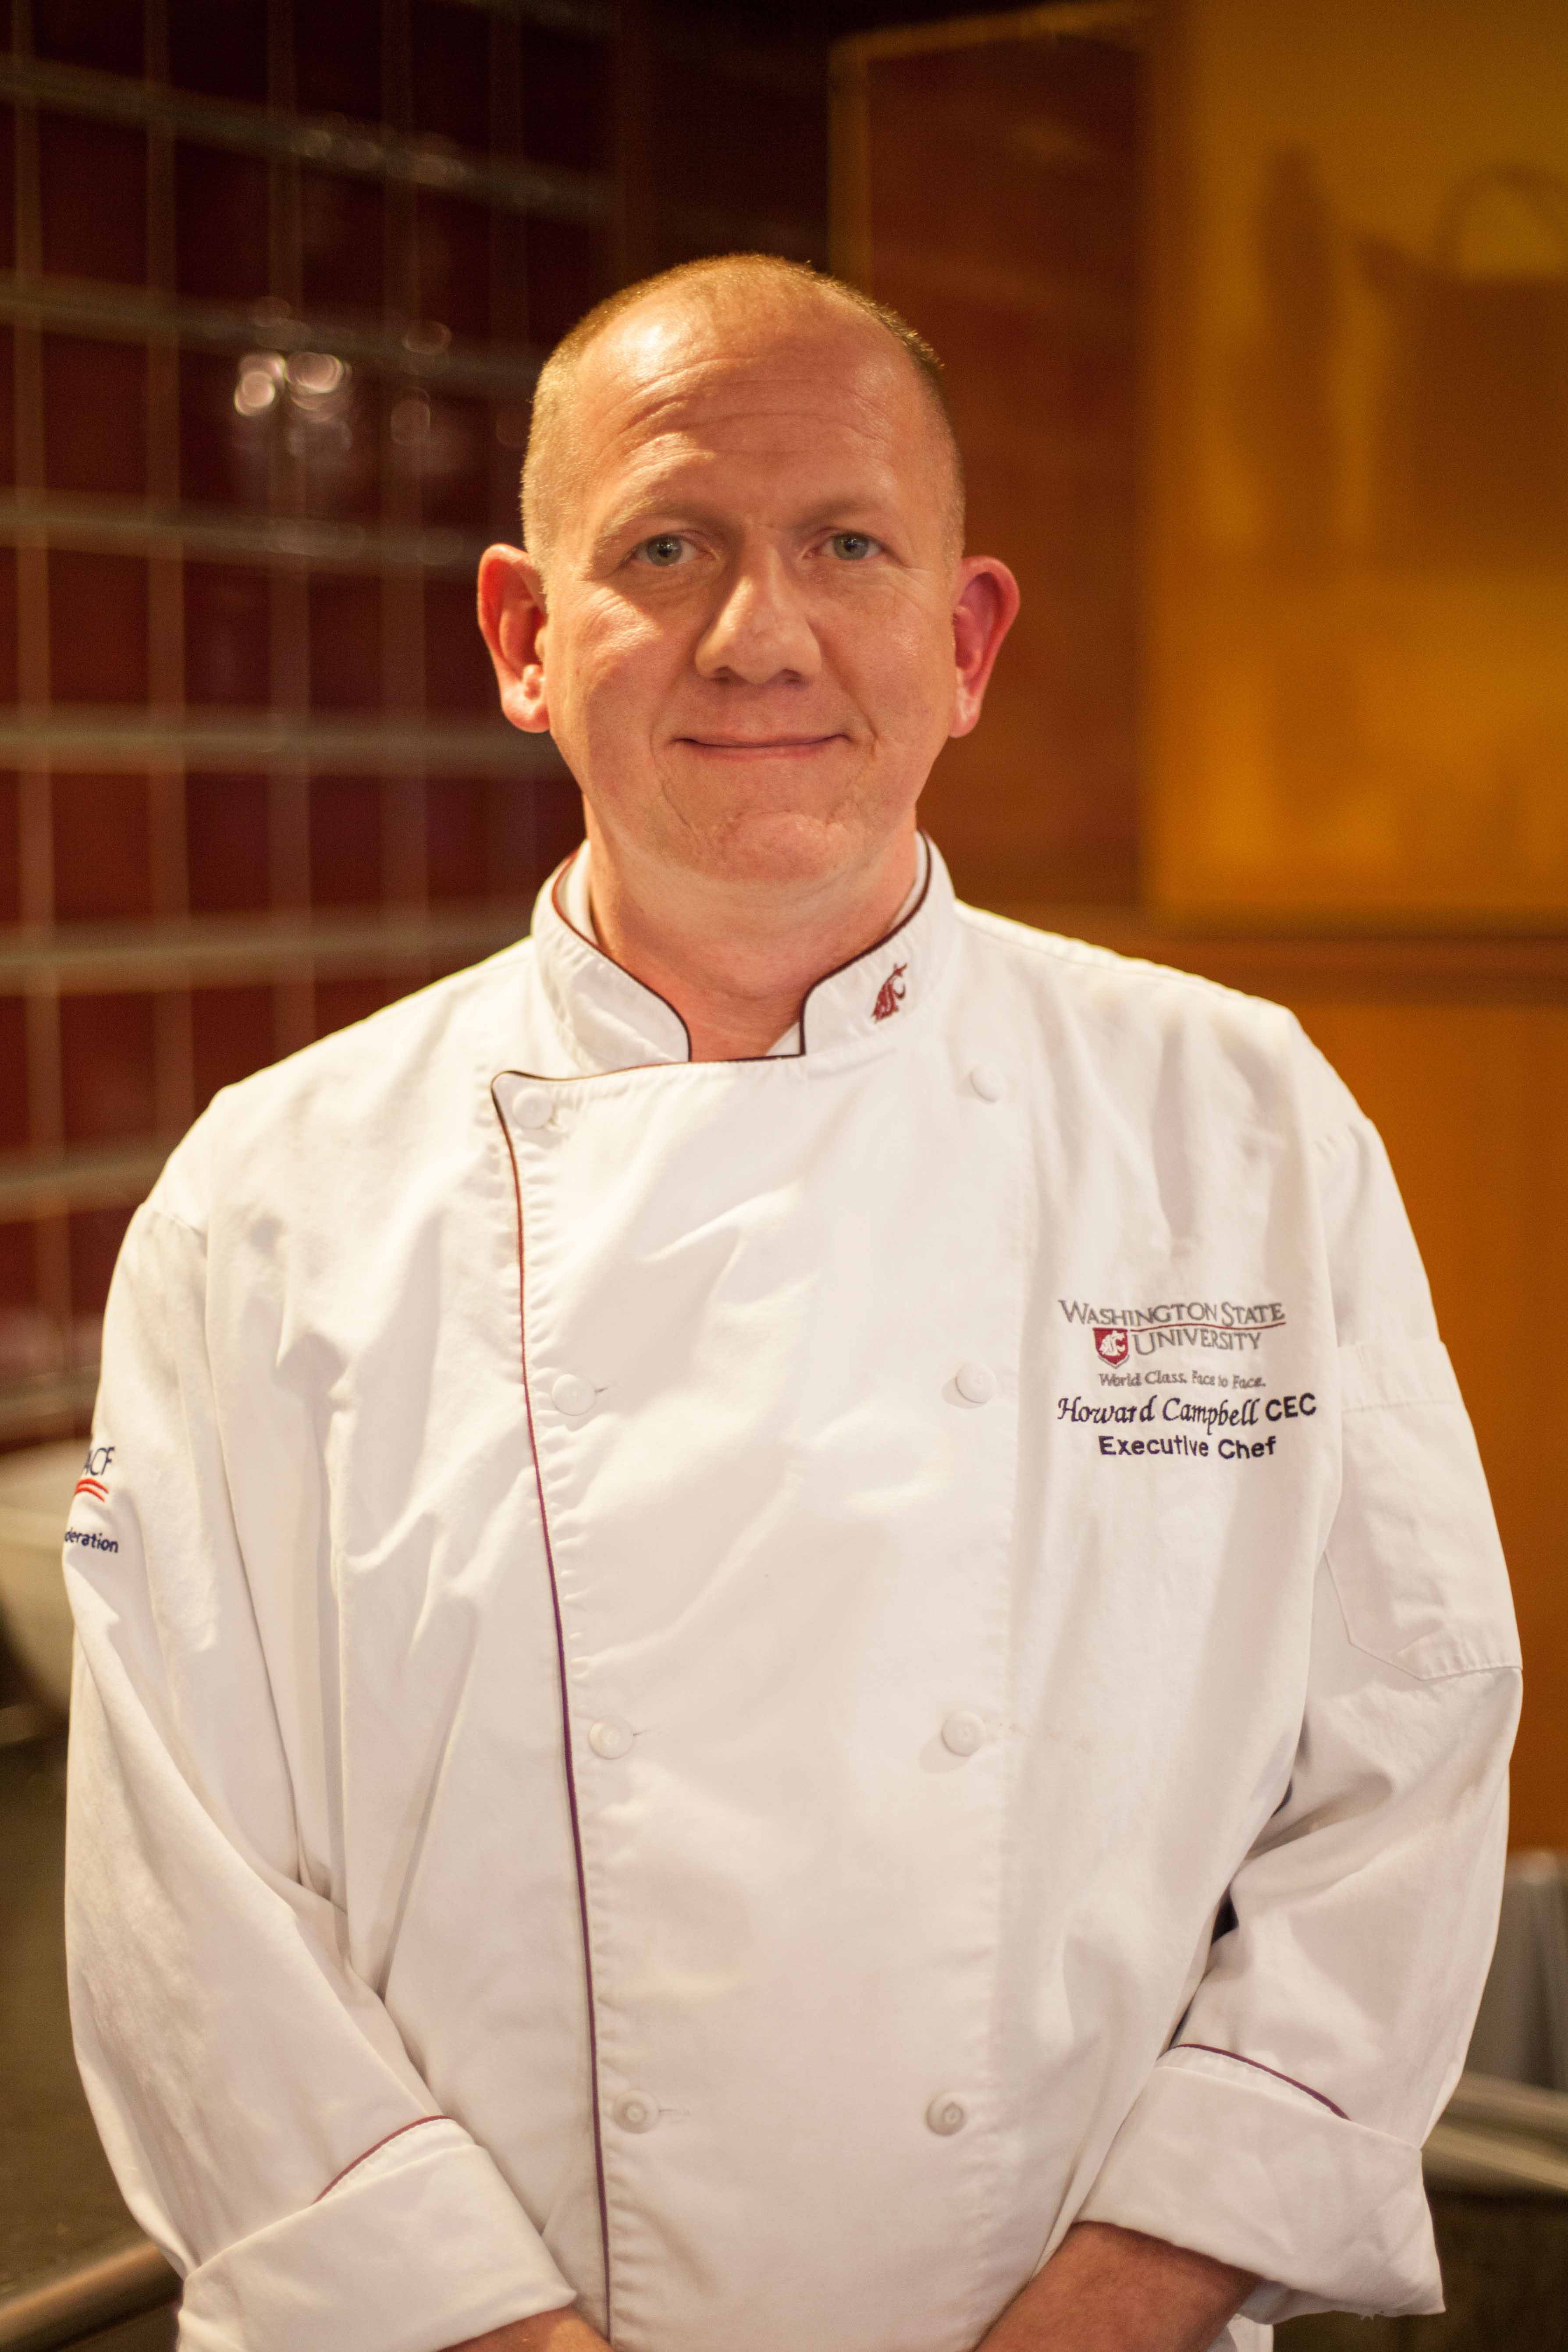 Headshot of Howard Campbell, Southside Cafe Executive Chef.